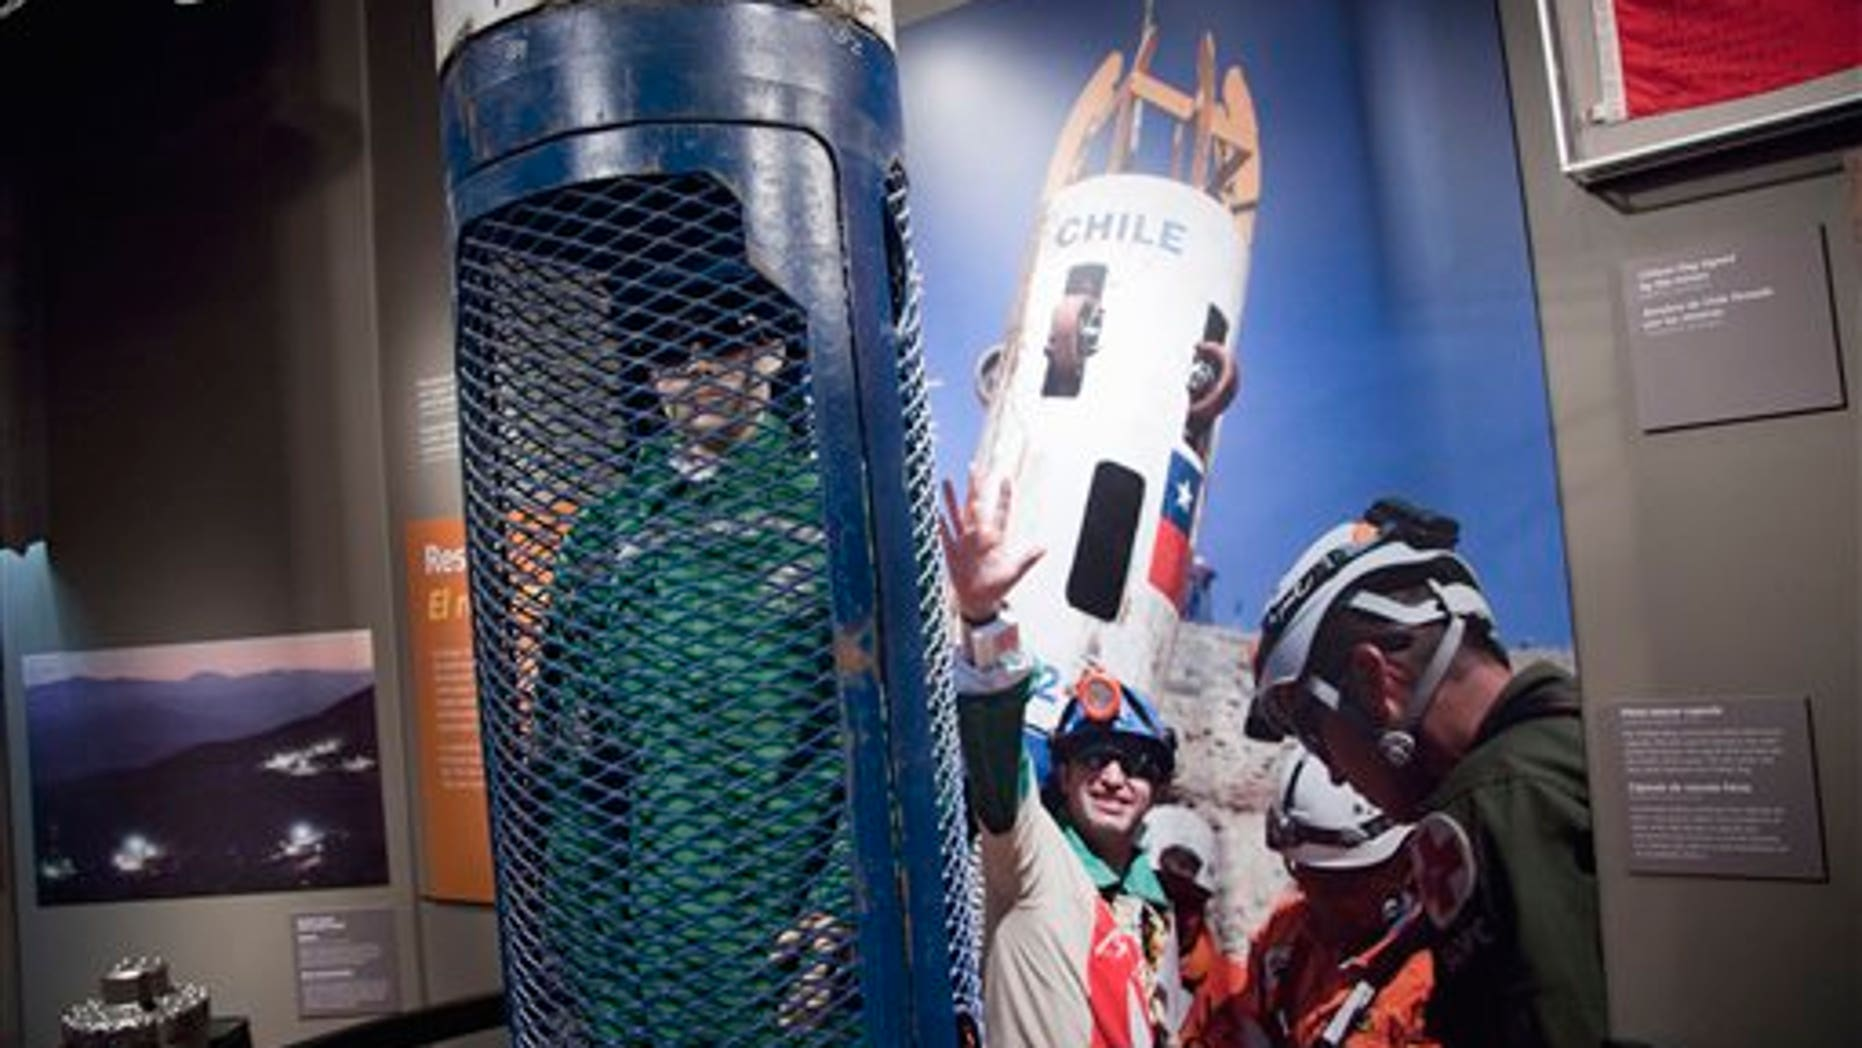 """Aug. 3, 2011: The Phoenix rescue capsule is seen on display during a press preview for the """"Against All Odds"""" exhibition commemorating the rescue of 33 Chilean miners on Wednesday at the Smithsonian National Museum of Natural History in Washington."""